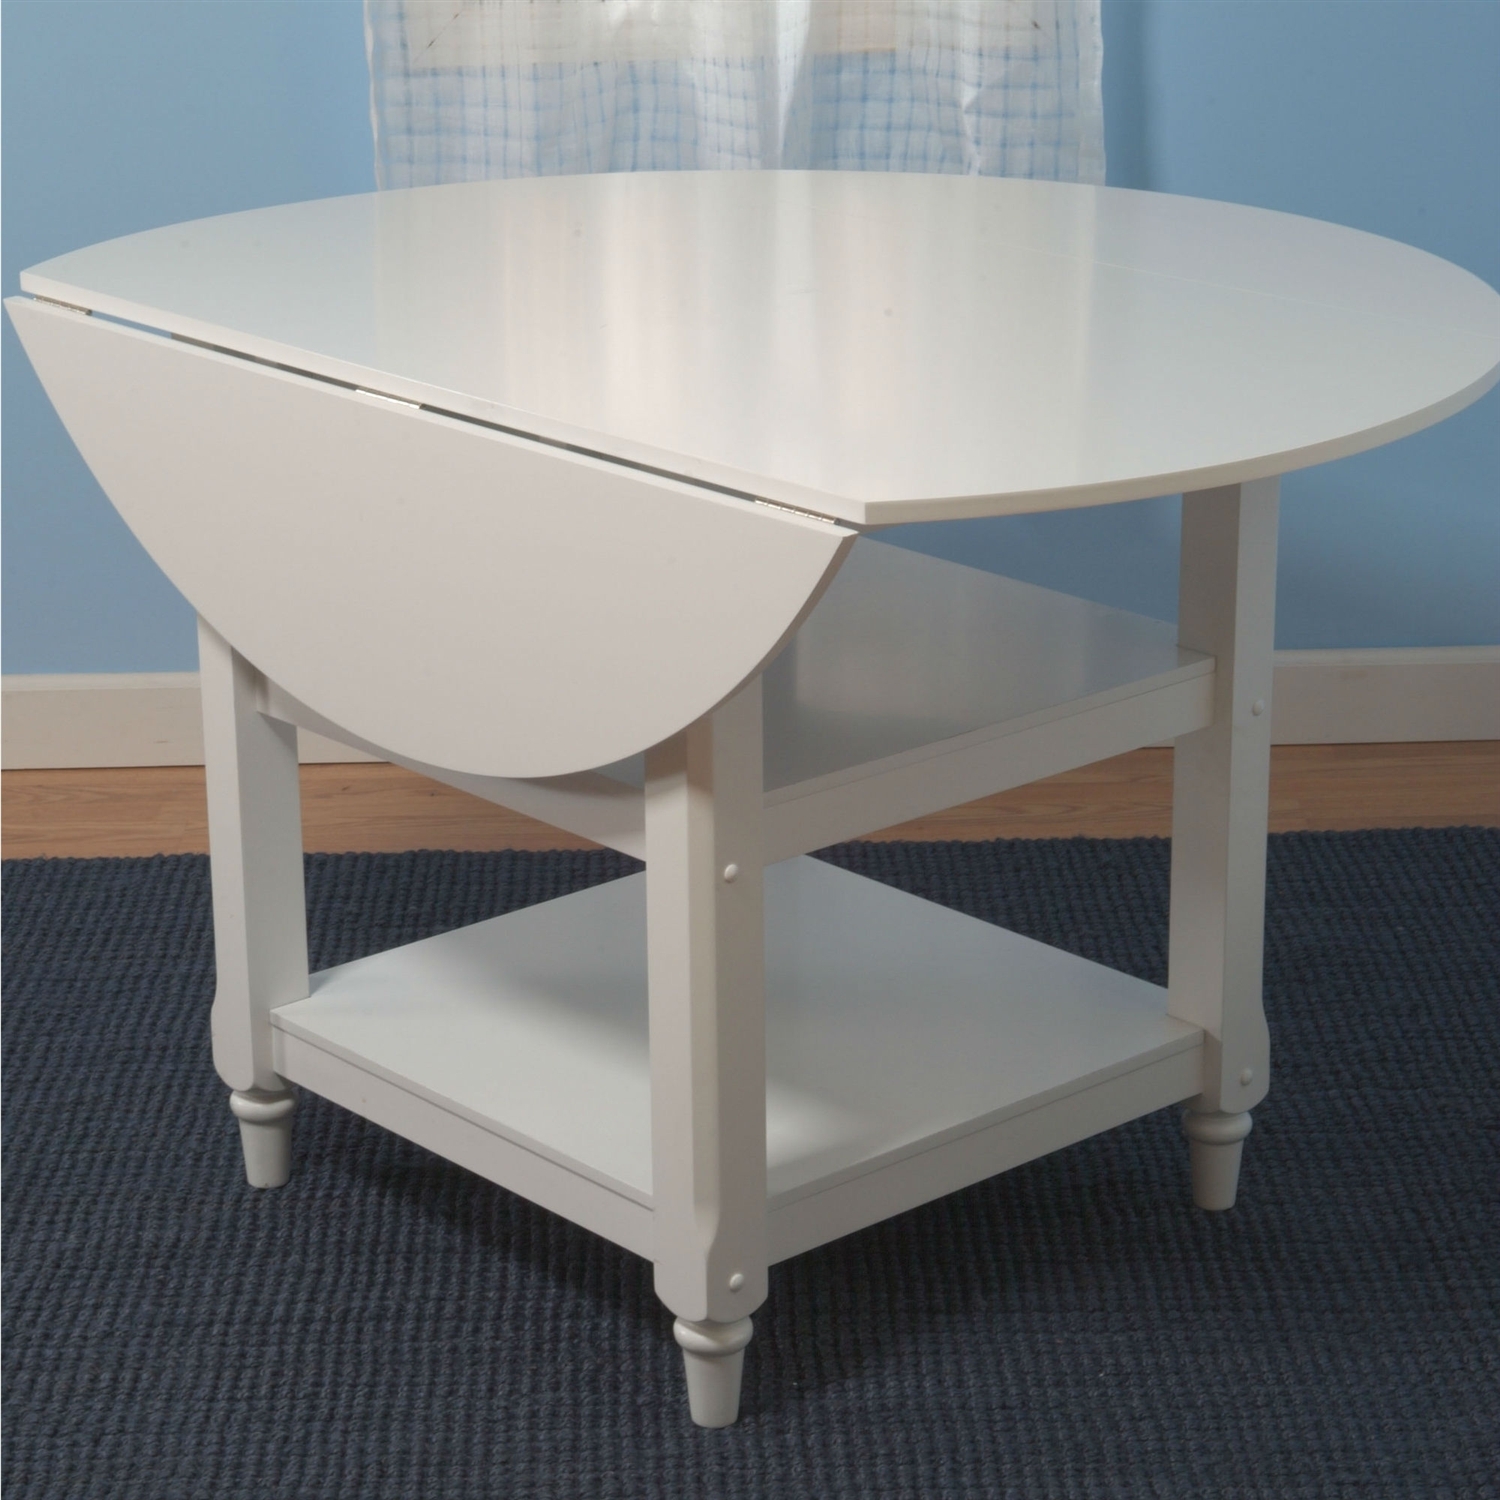 This 48-inch Round Dual Drop Leaf Dining Table in White Wood Finish would be a great addition to your home. It has a country style and is made of non-toxic wood. Assembly Required: Yes Top Material: Wood; Base Material: Wood Non-Toxic: Yes; Seating Capacity: 4 Table Base Type: Four leg; Product Care: Wipe clean with a dry cloth.